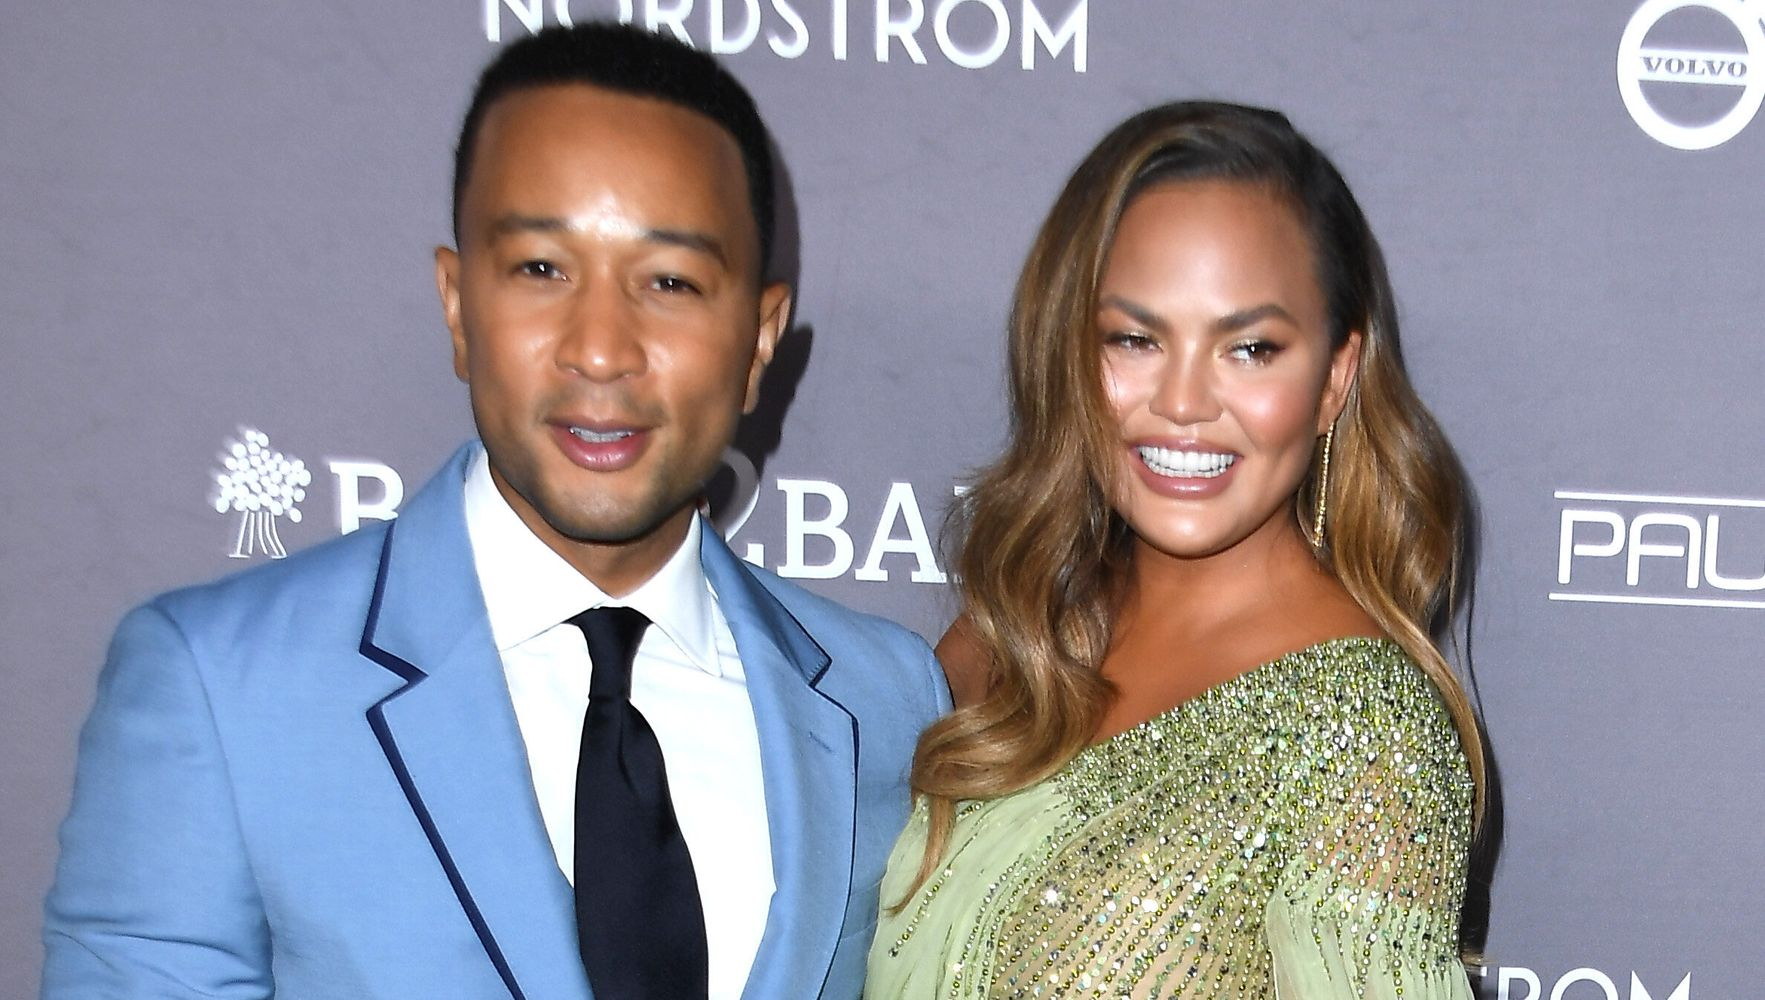 Westlake Legal Group 5de2ba8a2500004f19d2ebbb Chrissy Teigen Takes John Legend Trolling To New Heights With 'Sexiest Man Alive' PJs